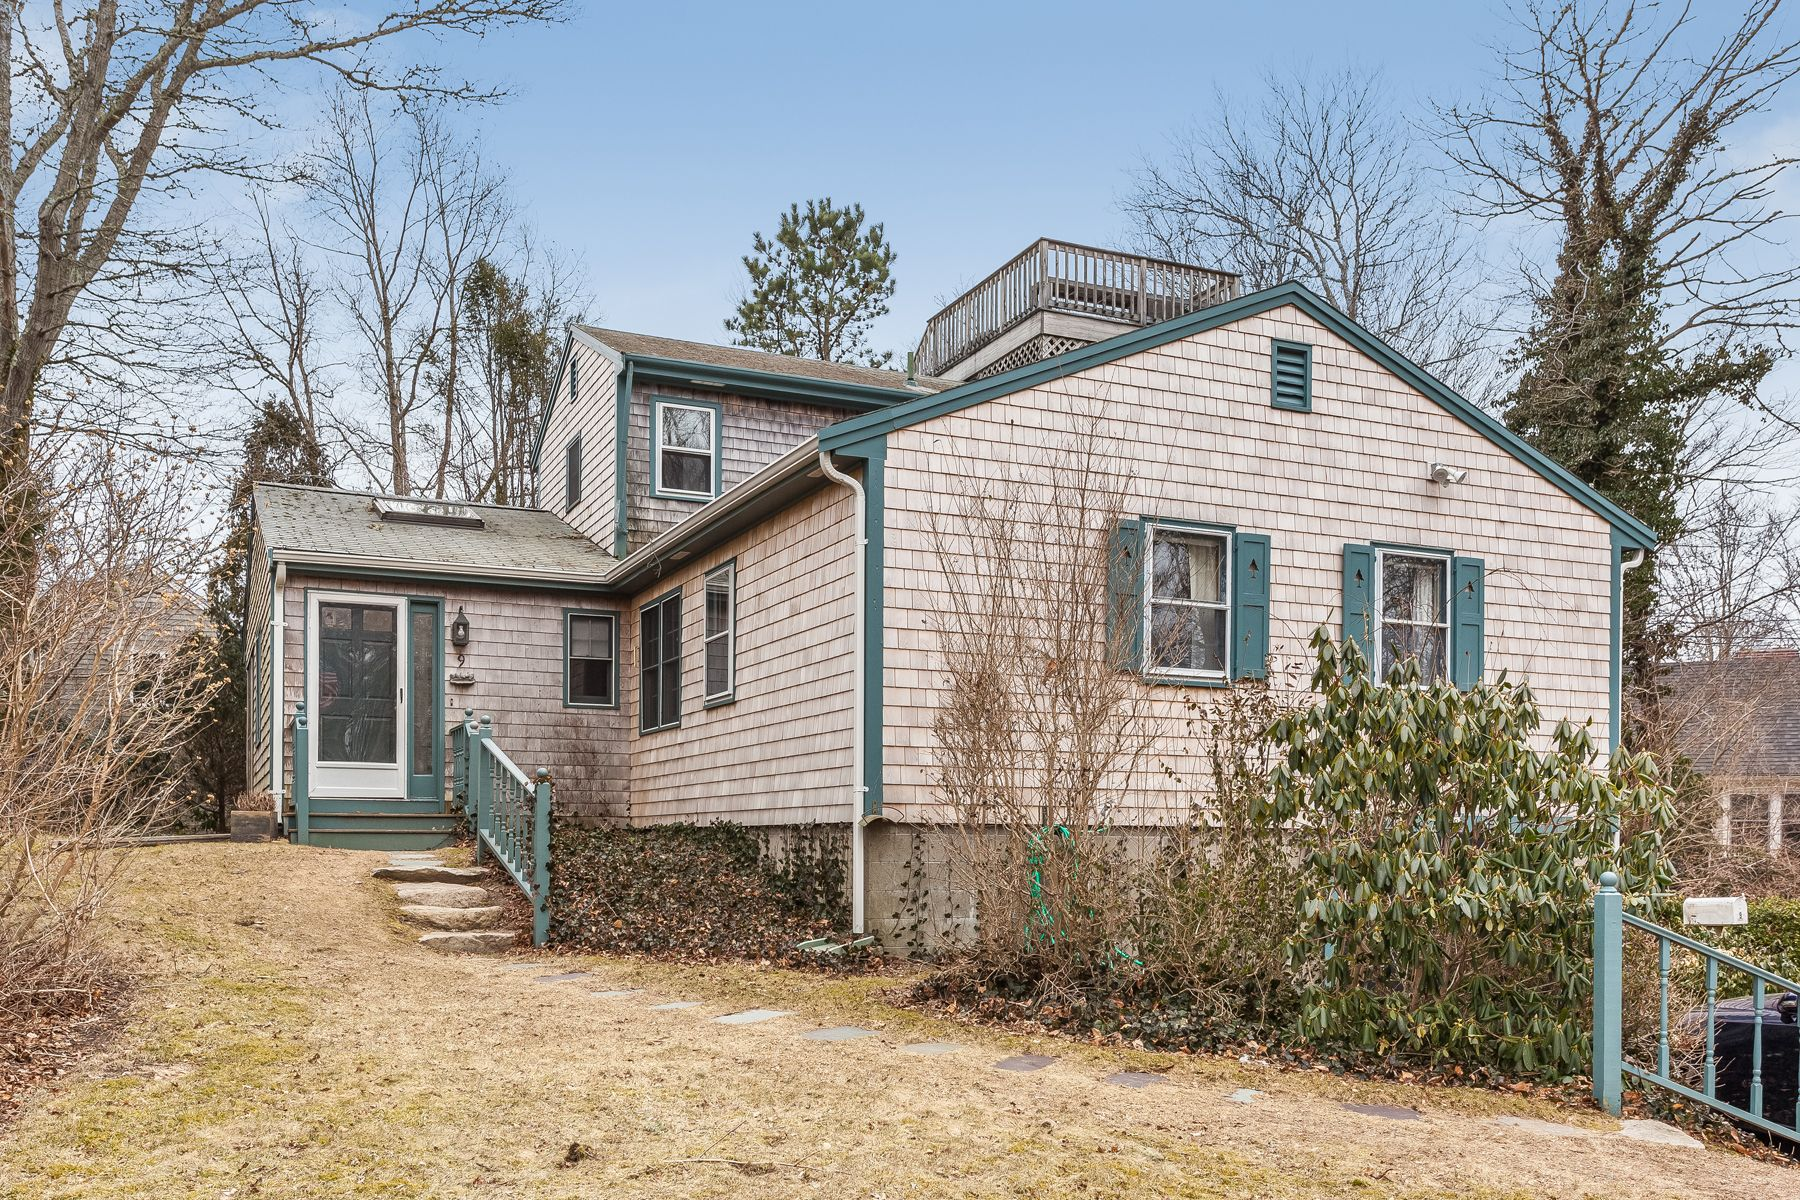 Single Family Home for Active at Woods Hole Village Living! 9 Strawberry Hill Road Woods Hole, Massachusetts 02543 United States